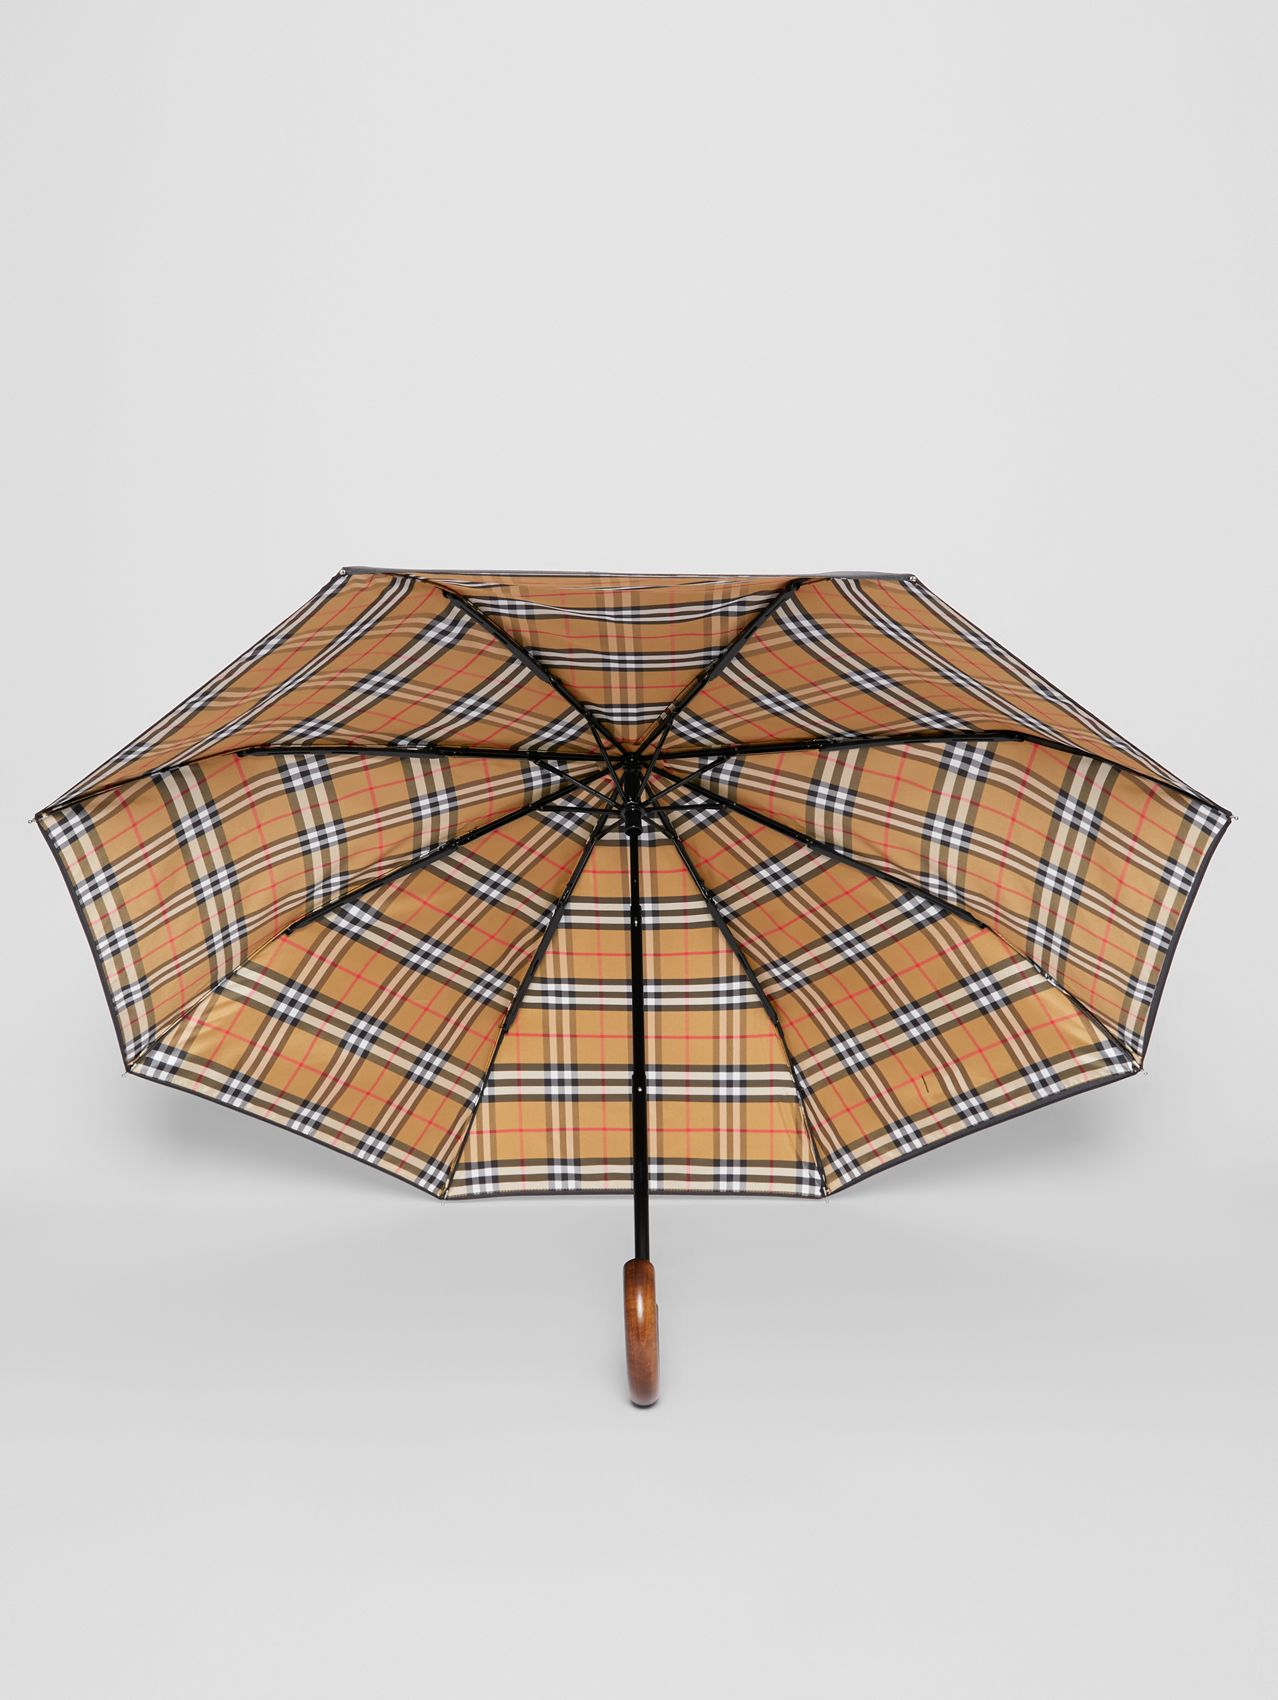 Vintage Check-lined Folding Umbrella in Black